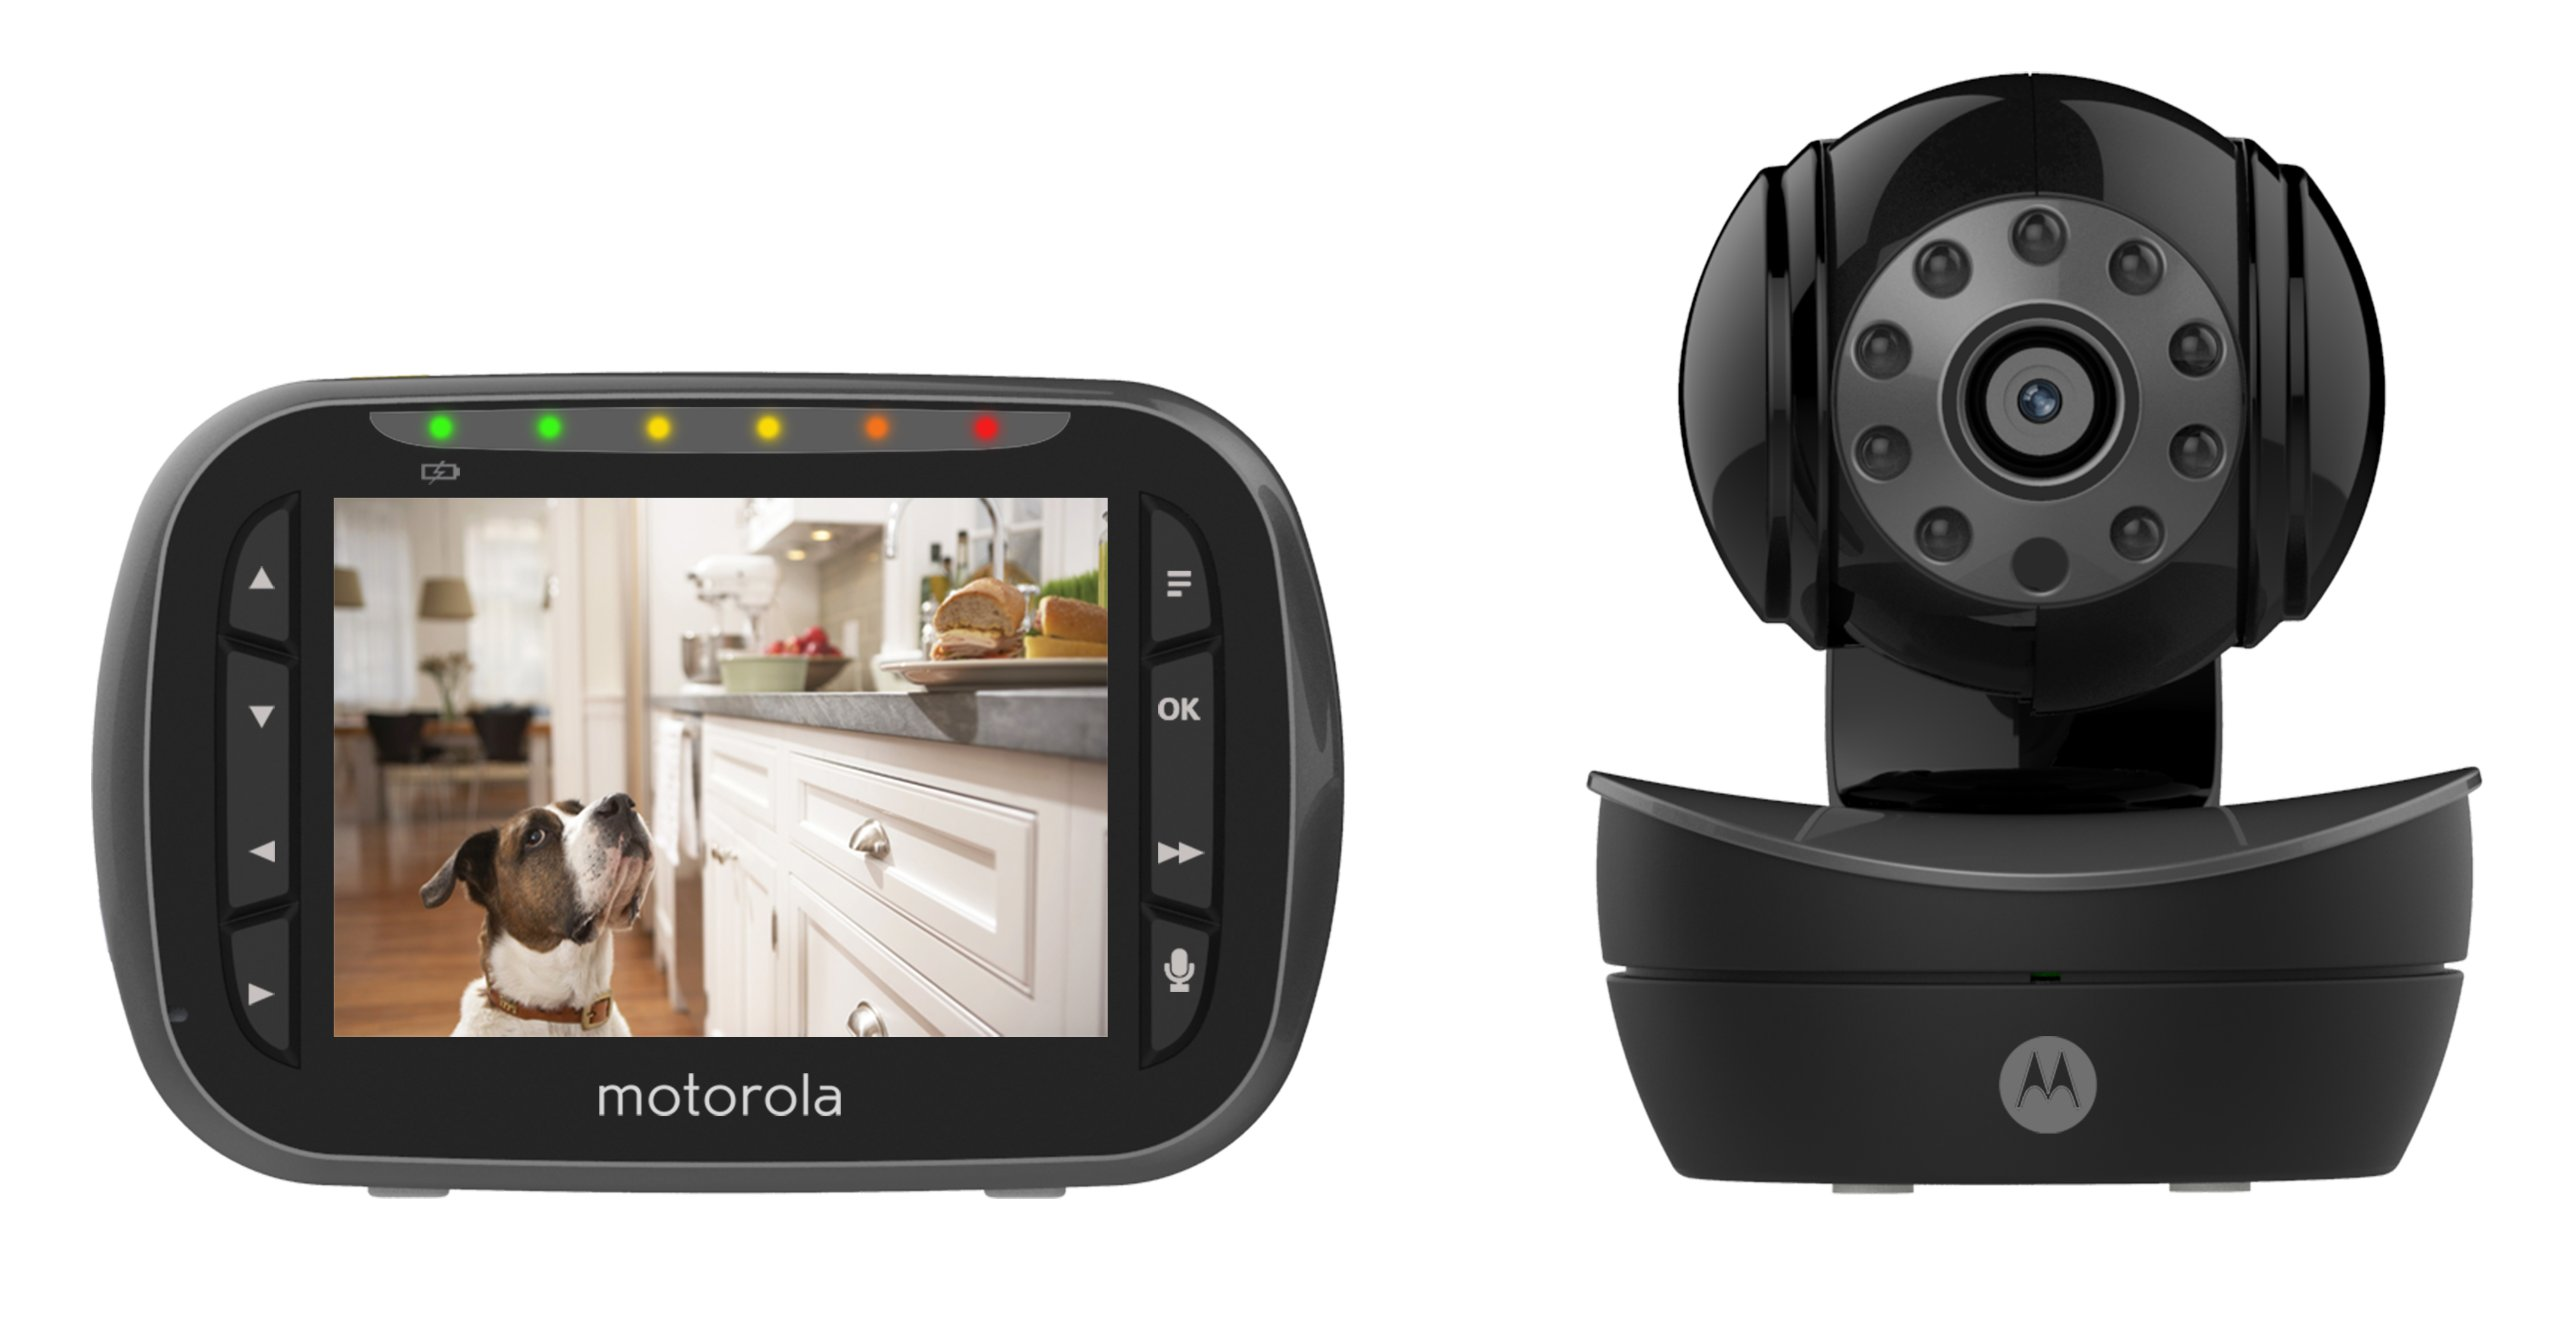 Motorola Pet Scout2300 Remote Wireless Pet Monitor with 3.5-Inch Color LCD Screen, Infrared Night Vision, Remote Camera Pan, Tilt and Zoom by Motorola